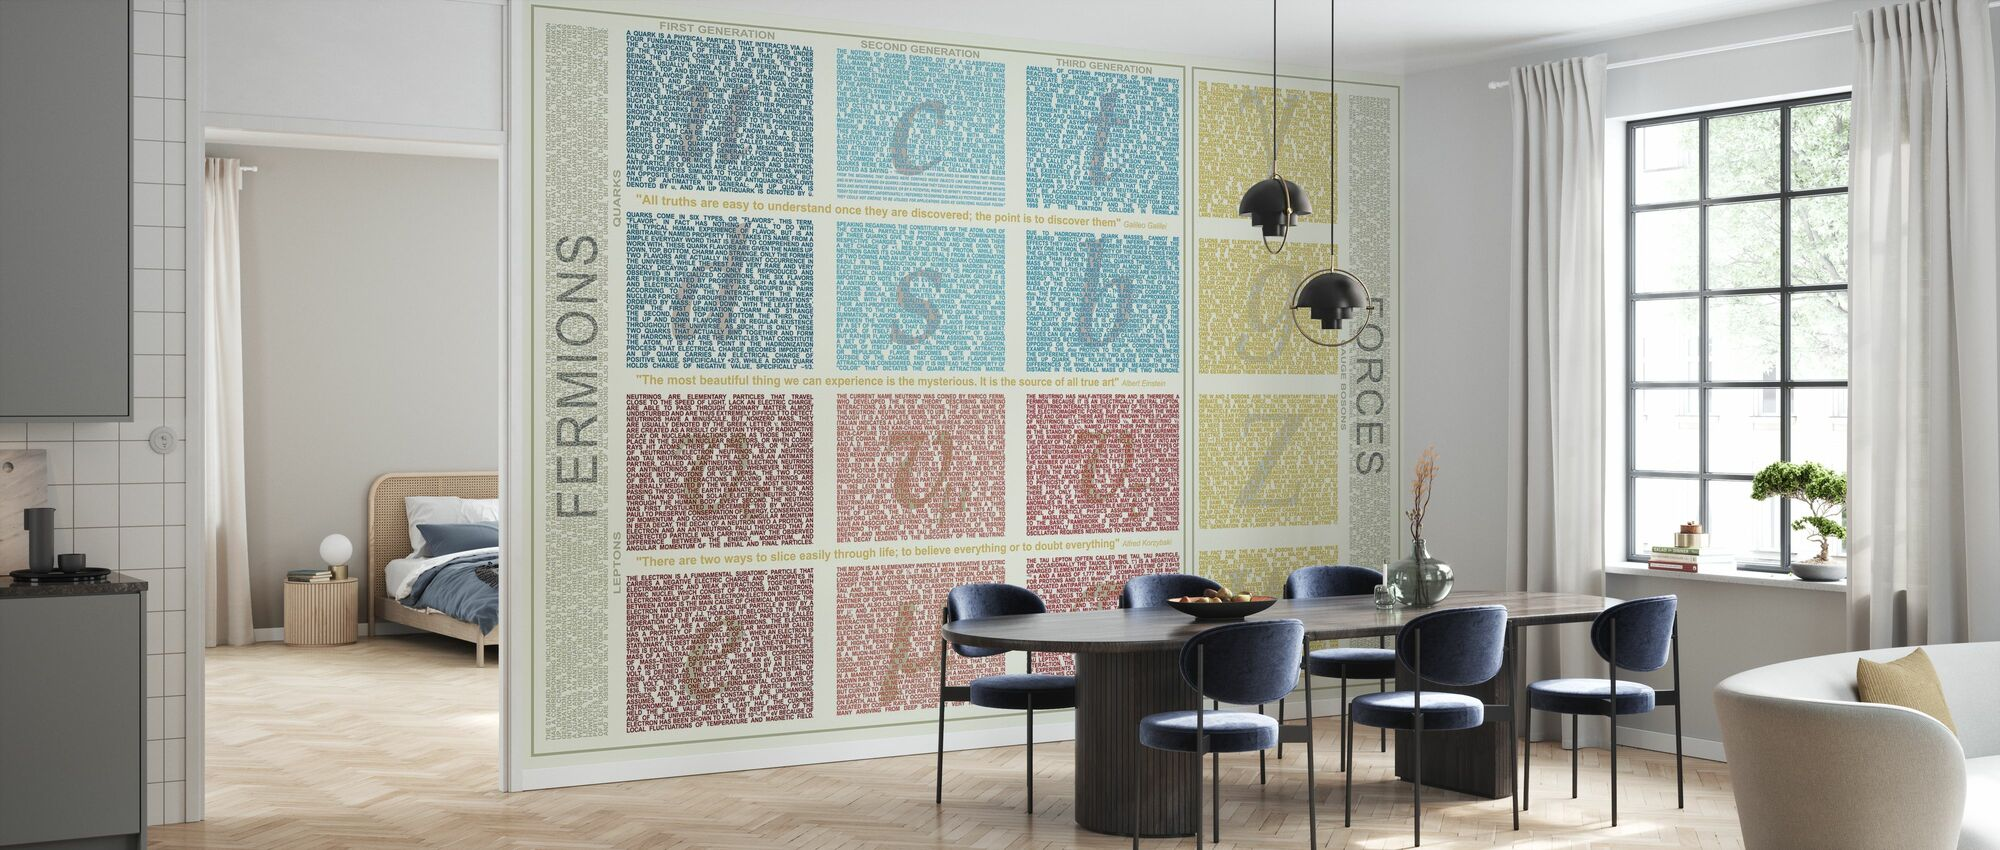 Standard Model of Particle Physics - Wallpaper - Kitchen